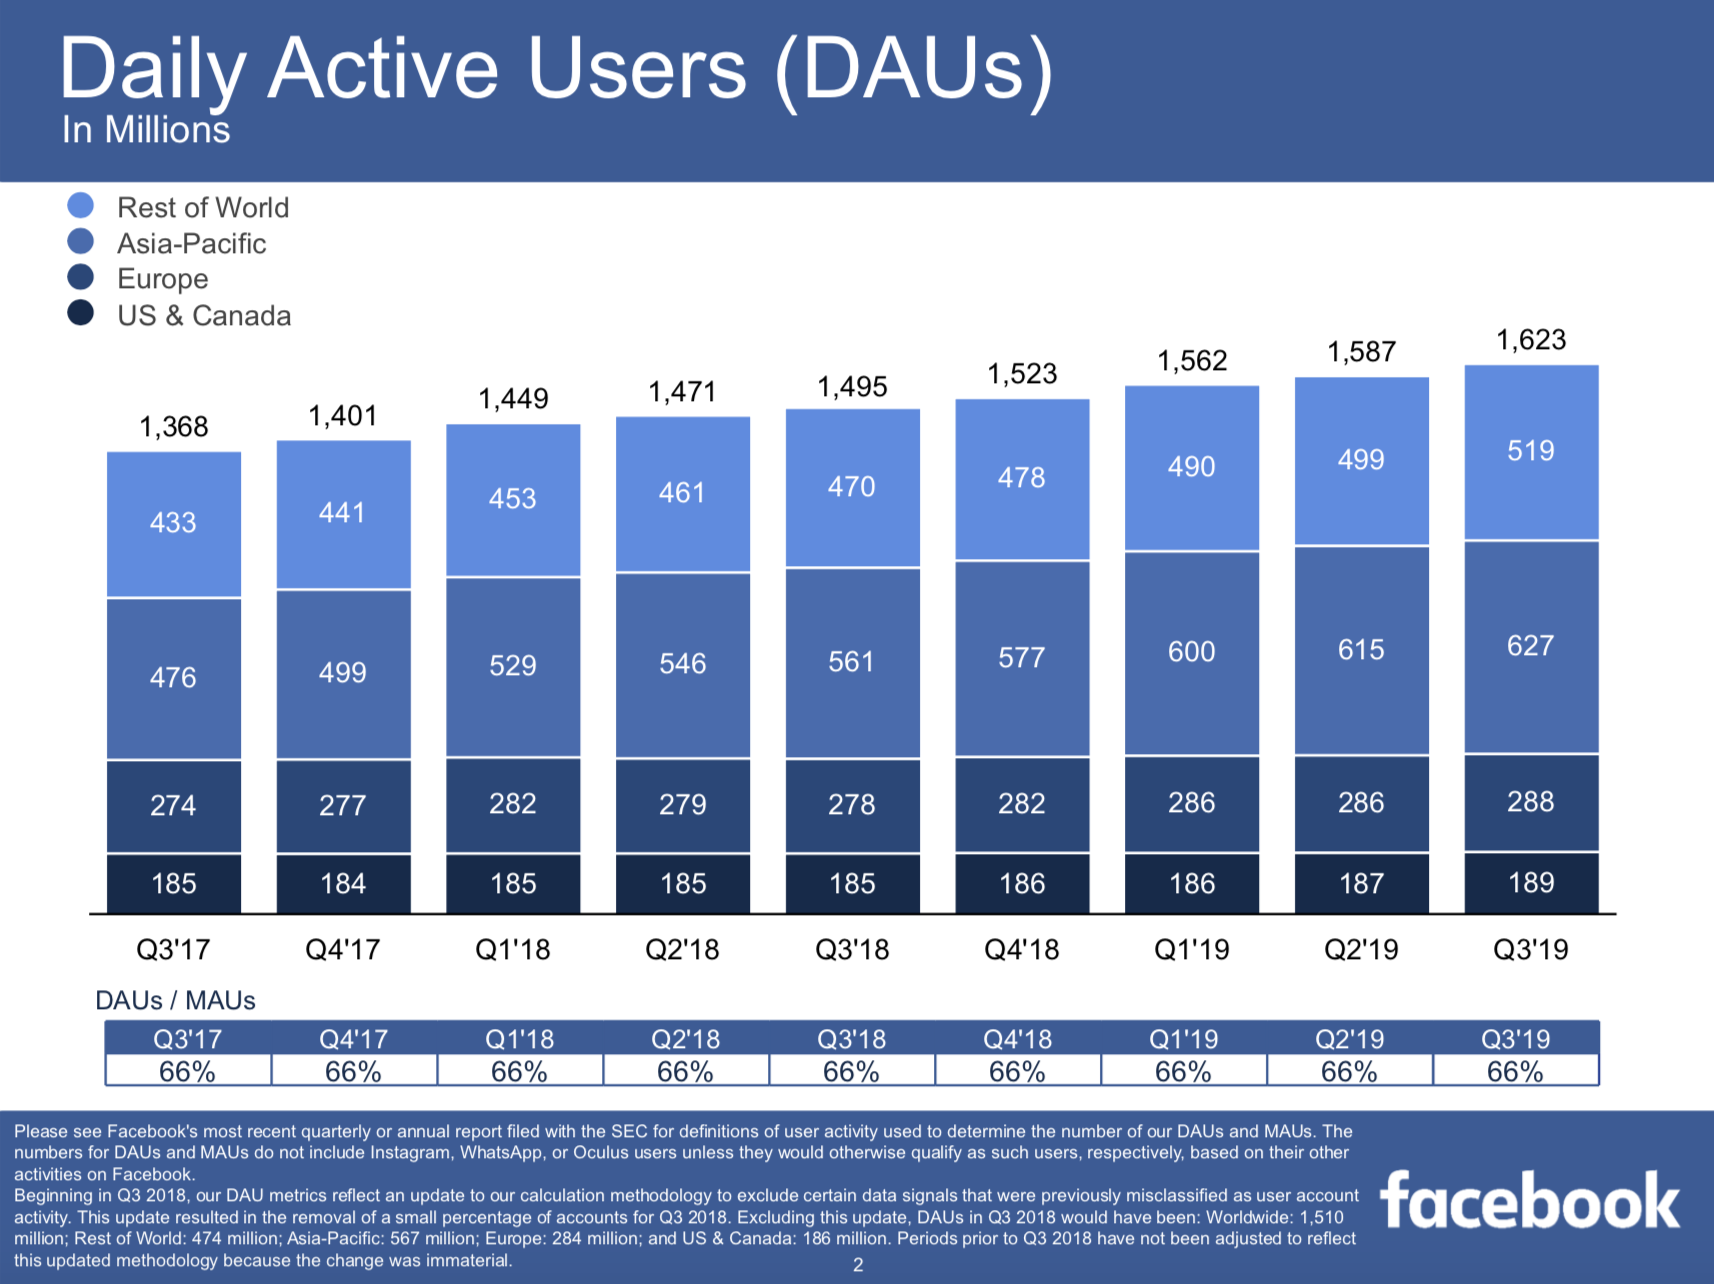 Facebook Results 2019 Q3 - Daily Active Users